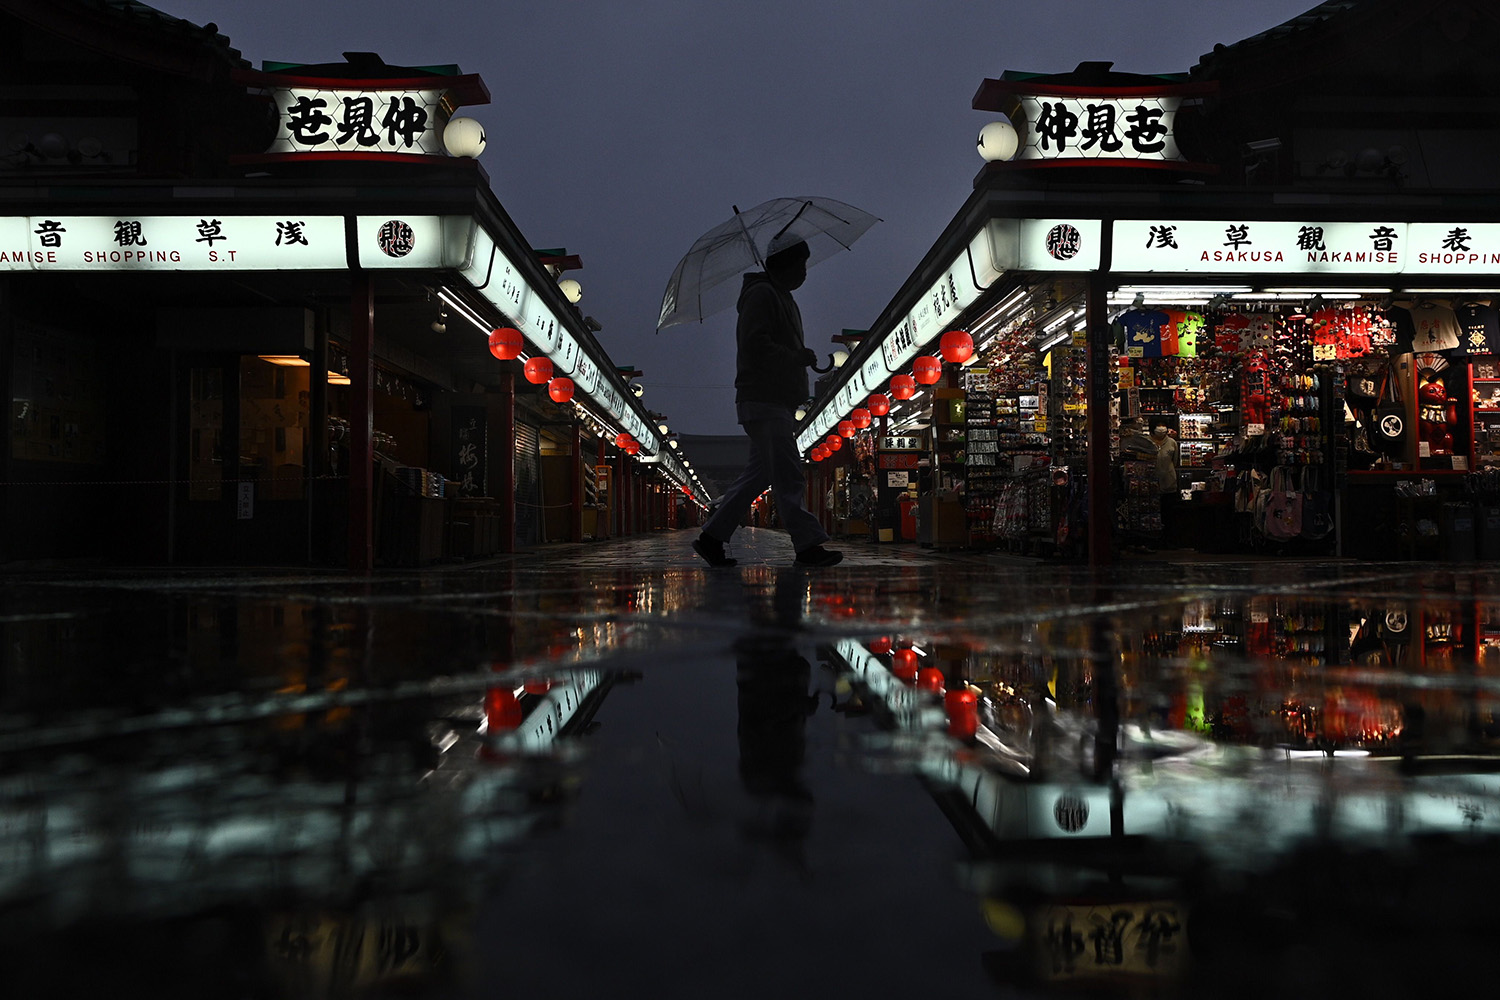 A man walks in the rain at the Sensoji Buddhist temple in Tokyo on April 1. PHILIP FONG/AFP via Getty Images